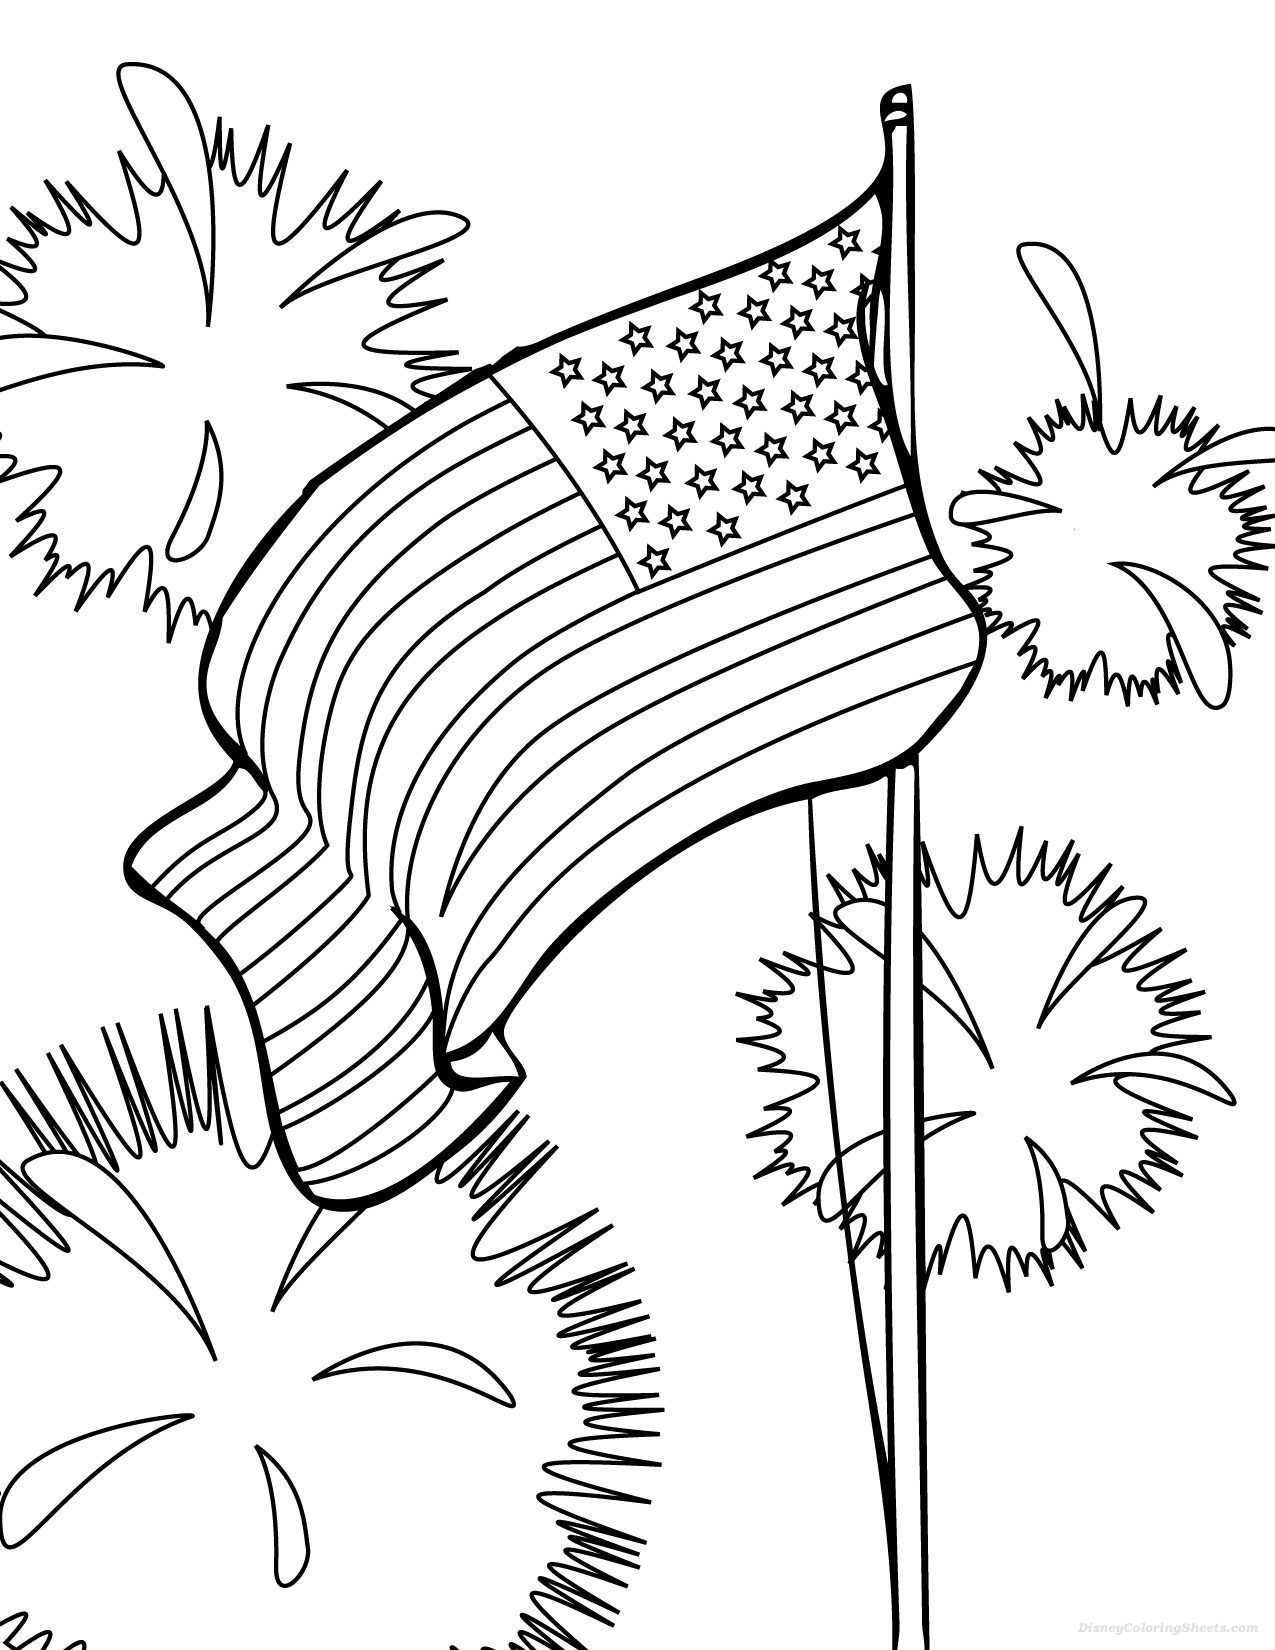 american flag coloring pages for preschool coloring pages